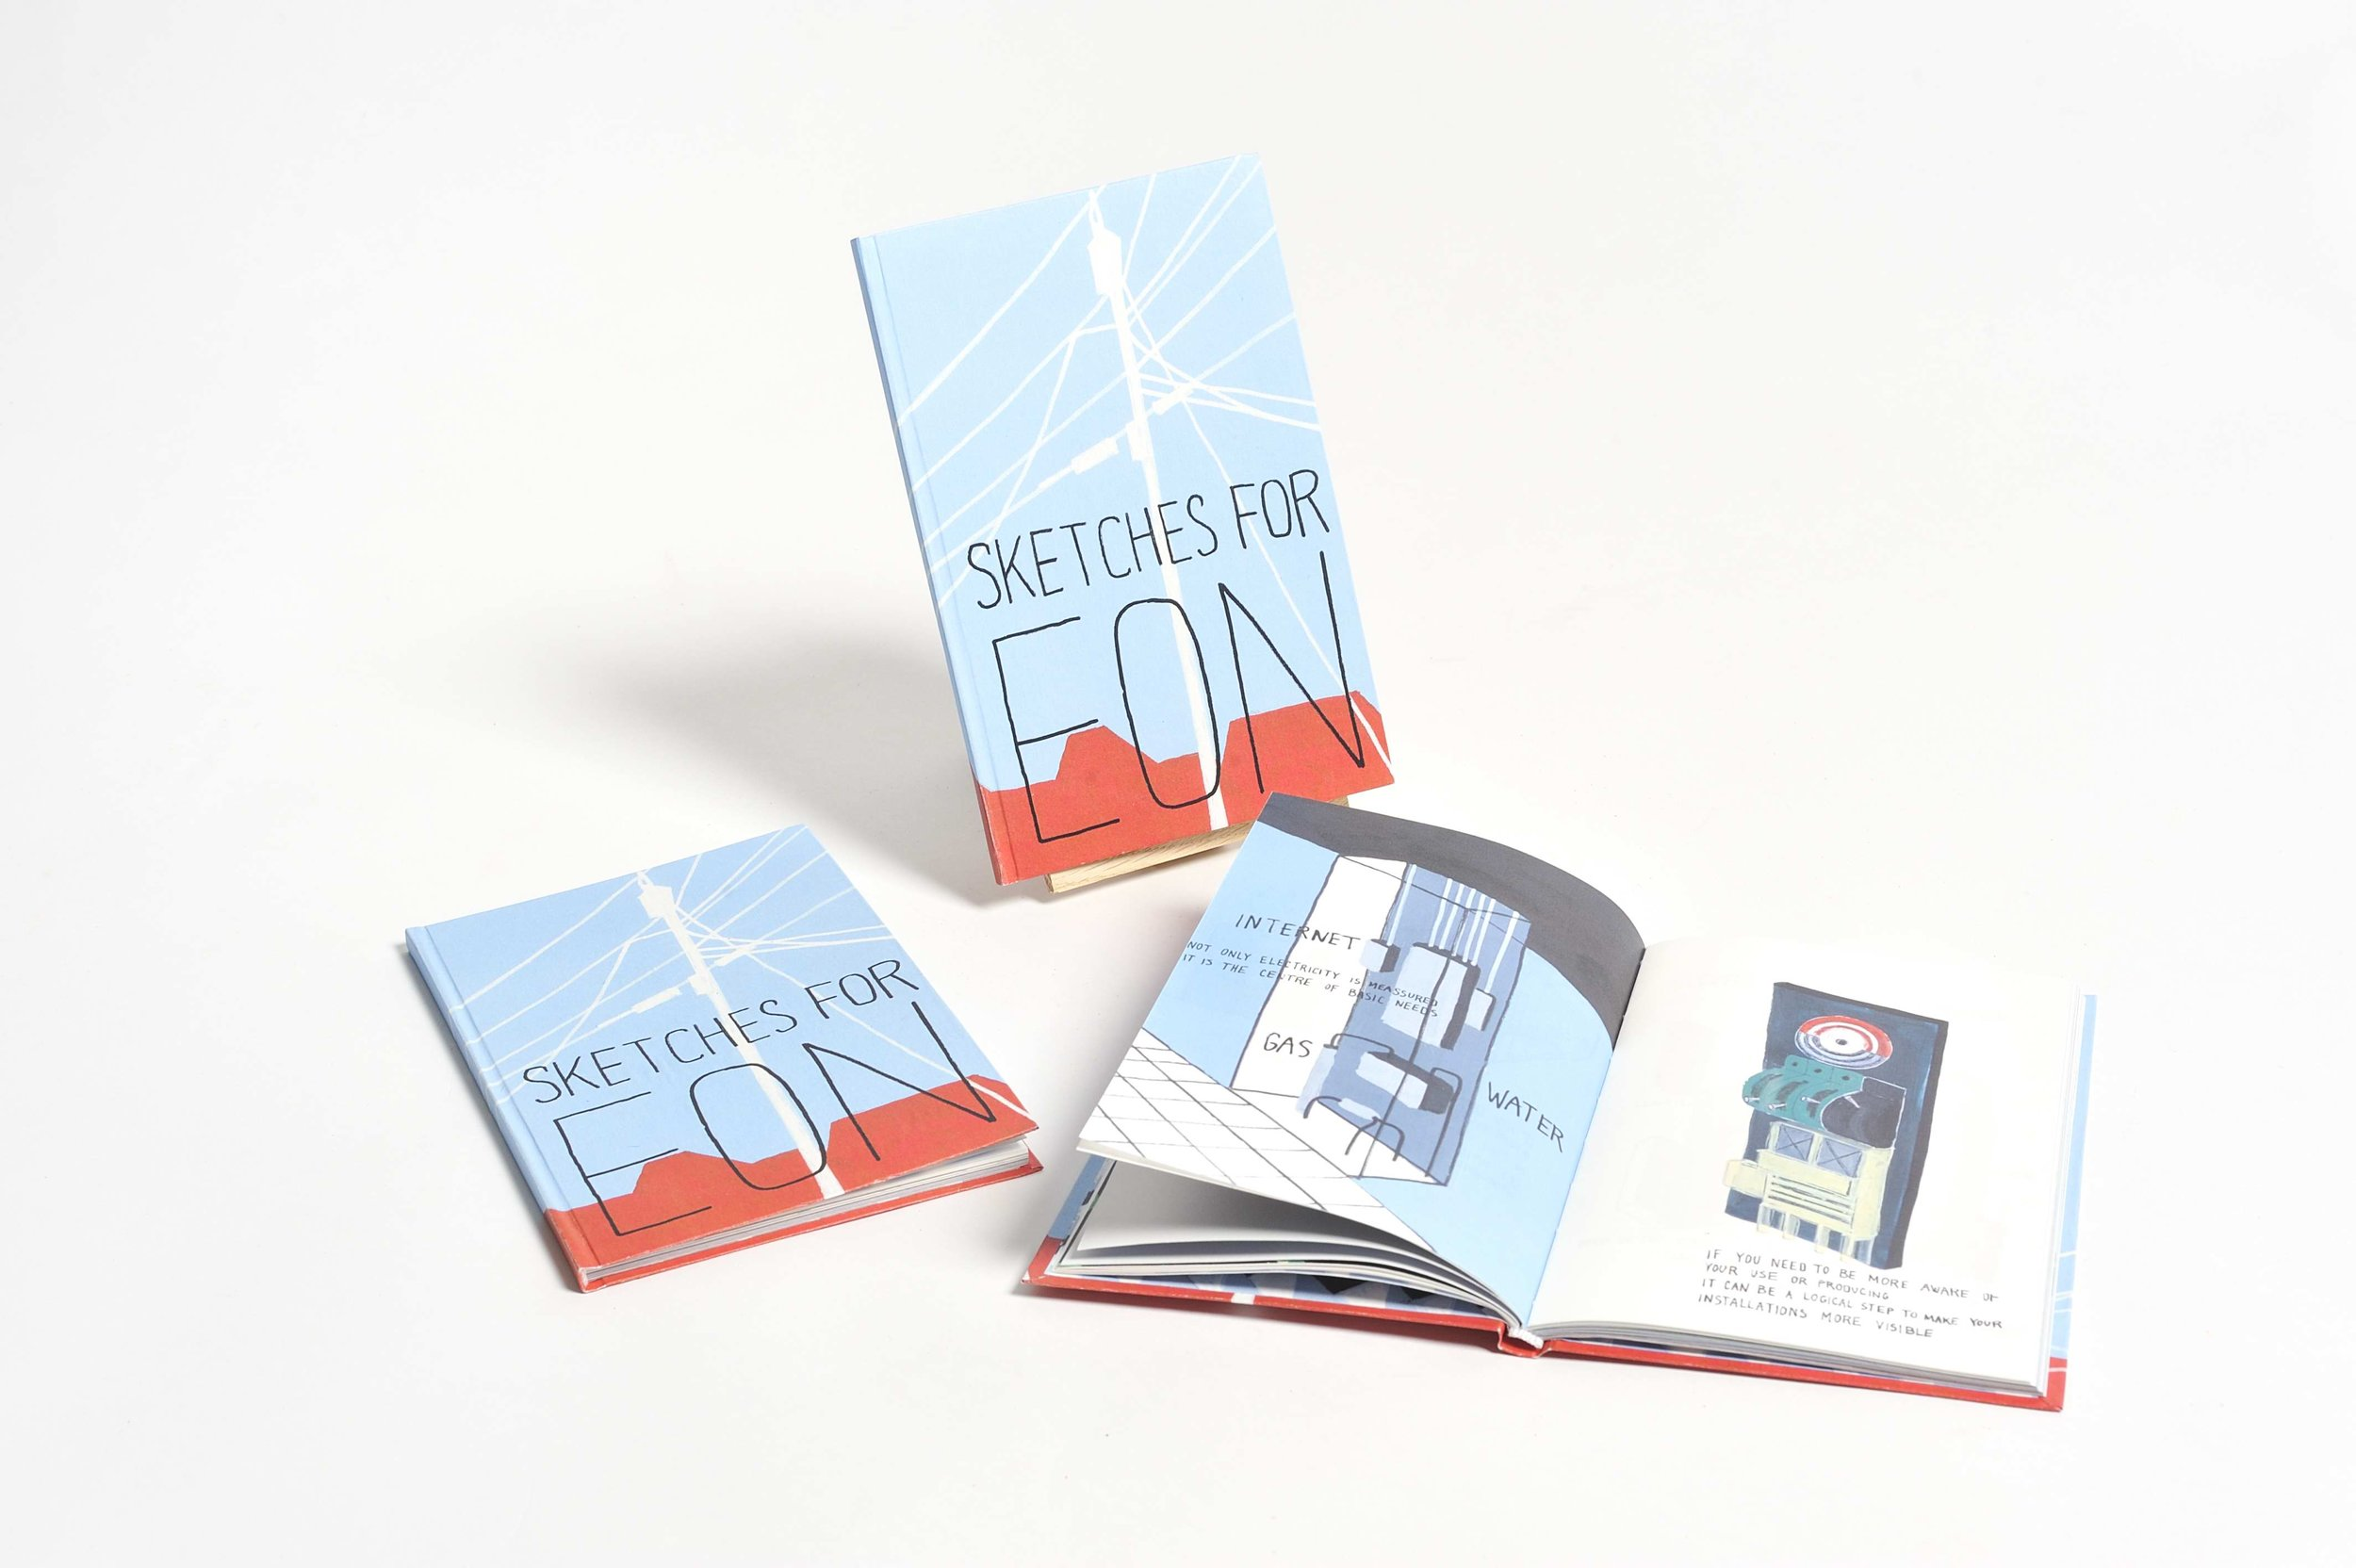 'Sketches for EON', an illustrated publication about changes within the world of energy, 2013